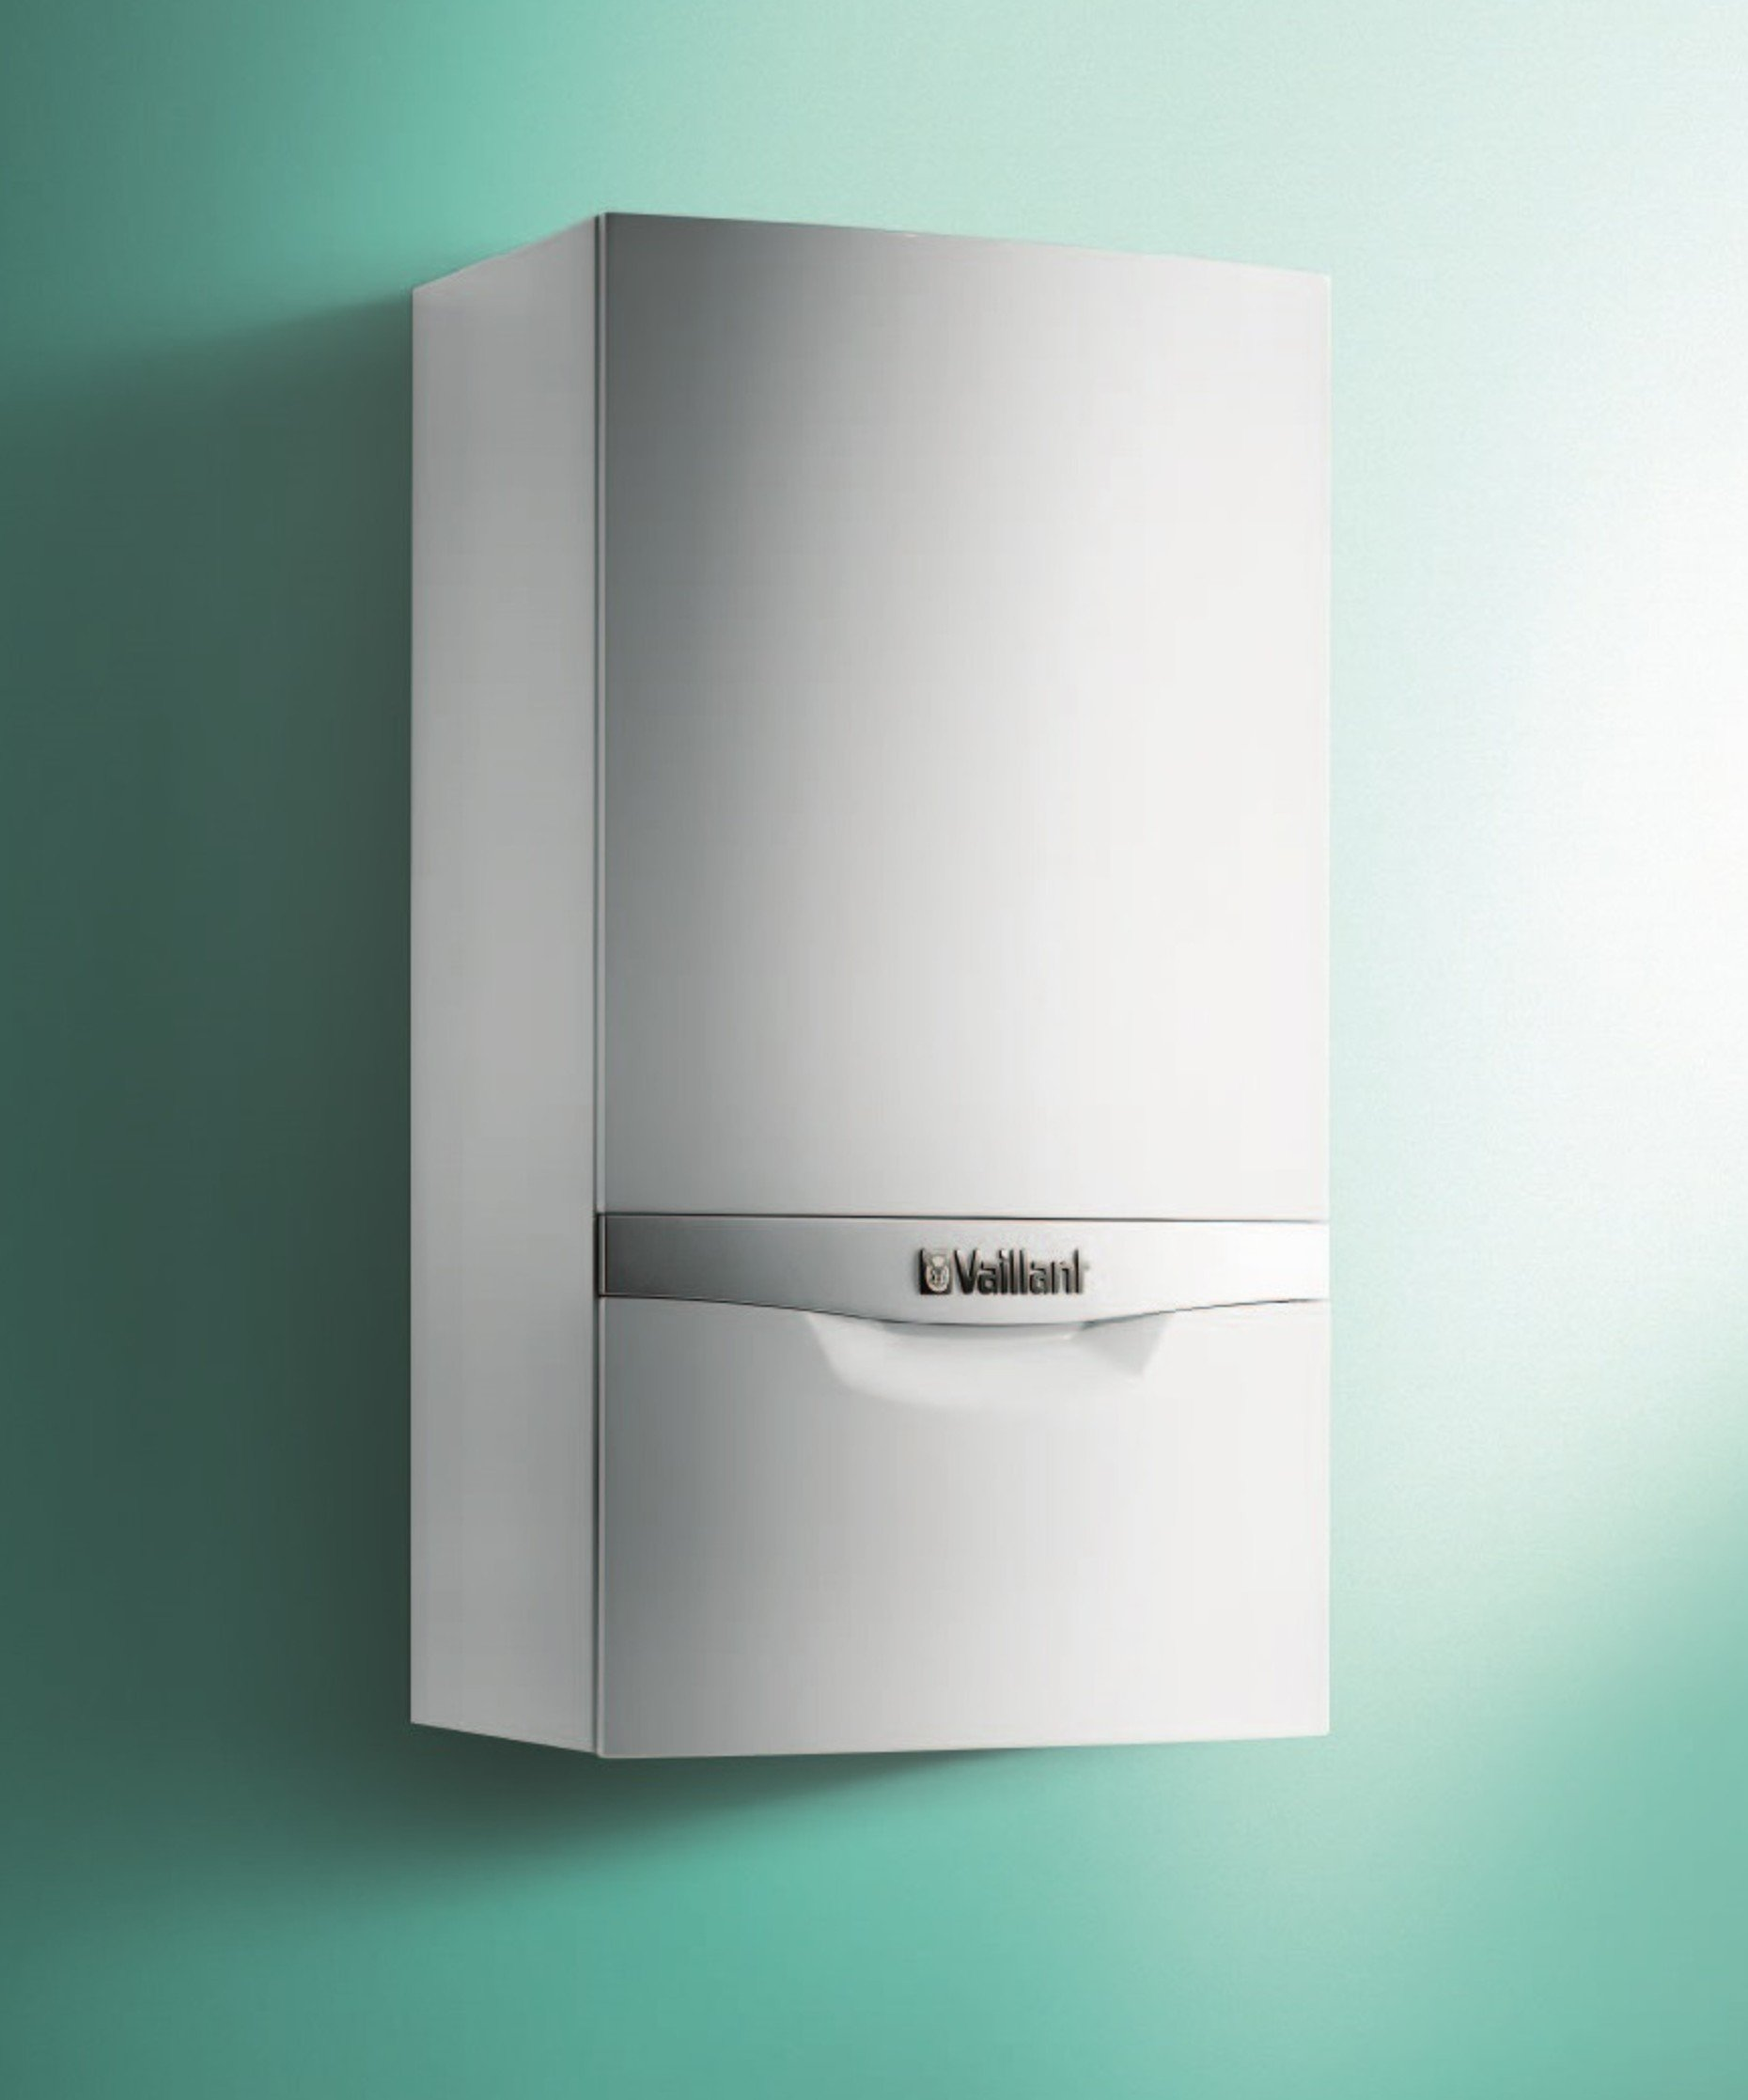 Котел газовый Vaillant Atmotec Plus VUW 240-5 10003971